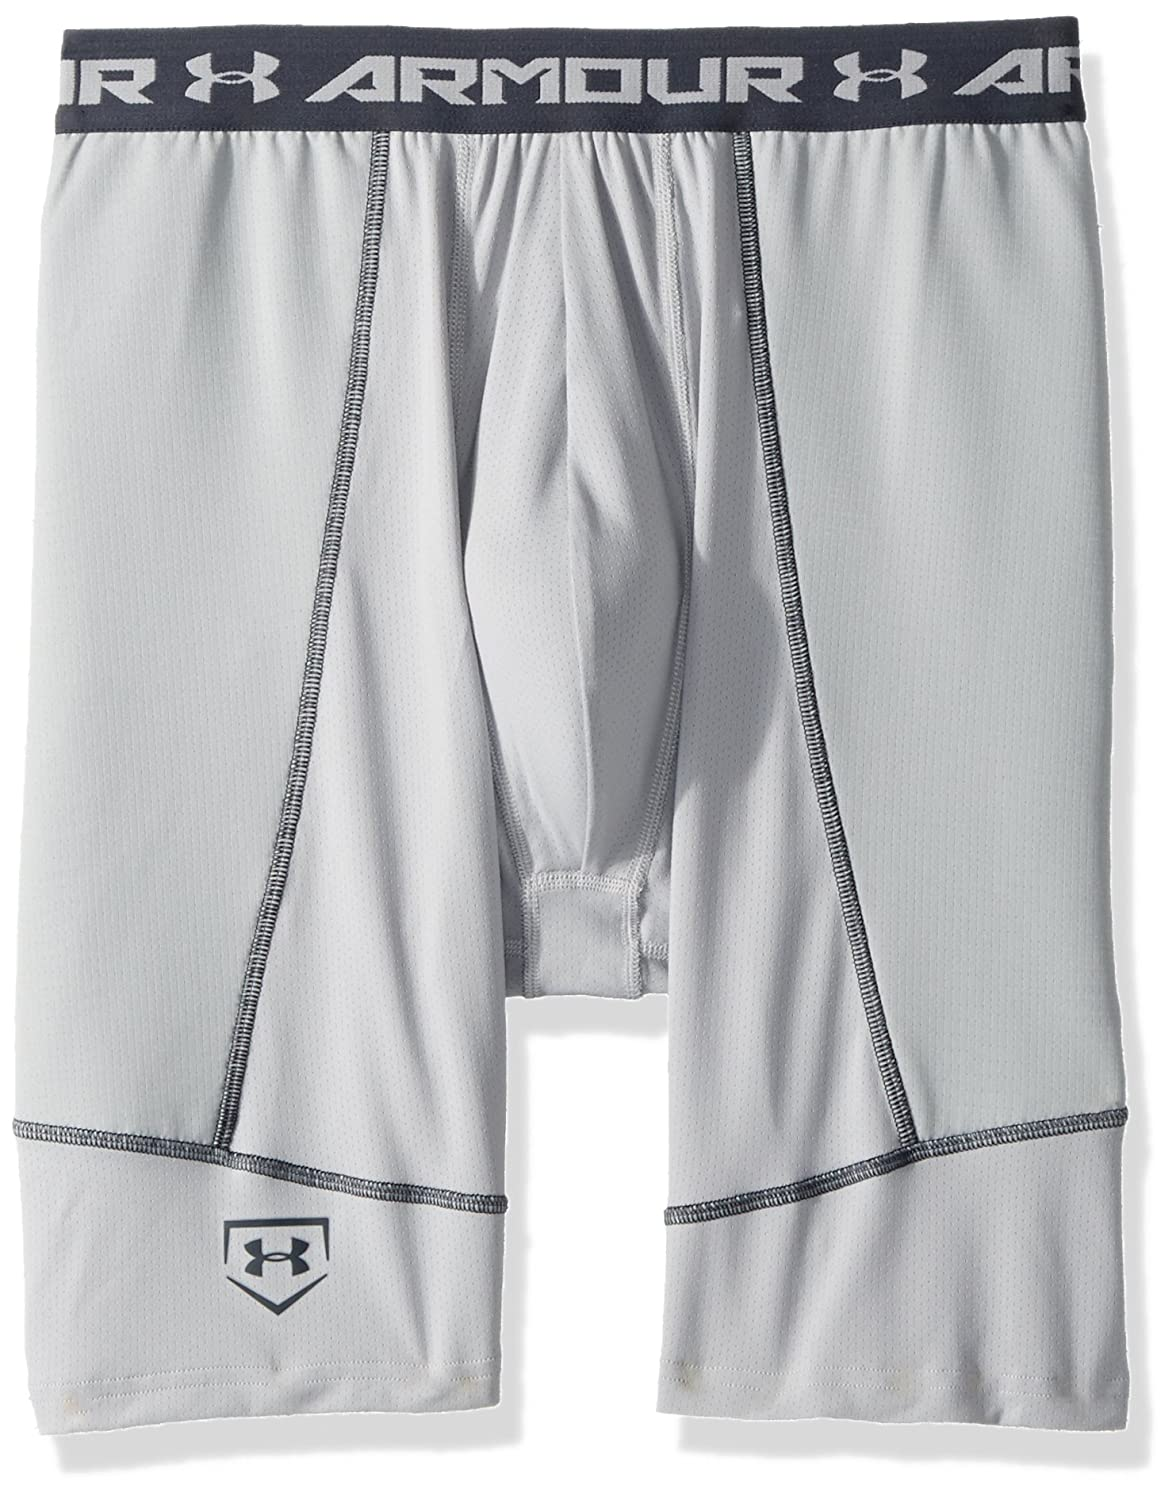 Under Armour Boys 'スライダwith Cupソリッド B01M6Z91DM Youth Small|Baseball Gray/Stealth Gray Baseball Gray/Stealth Gray Youth Small